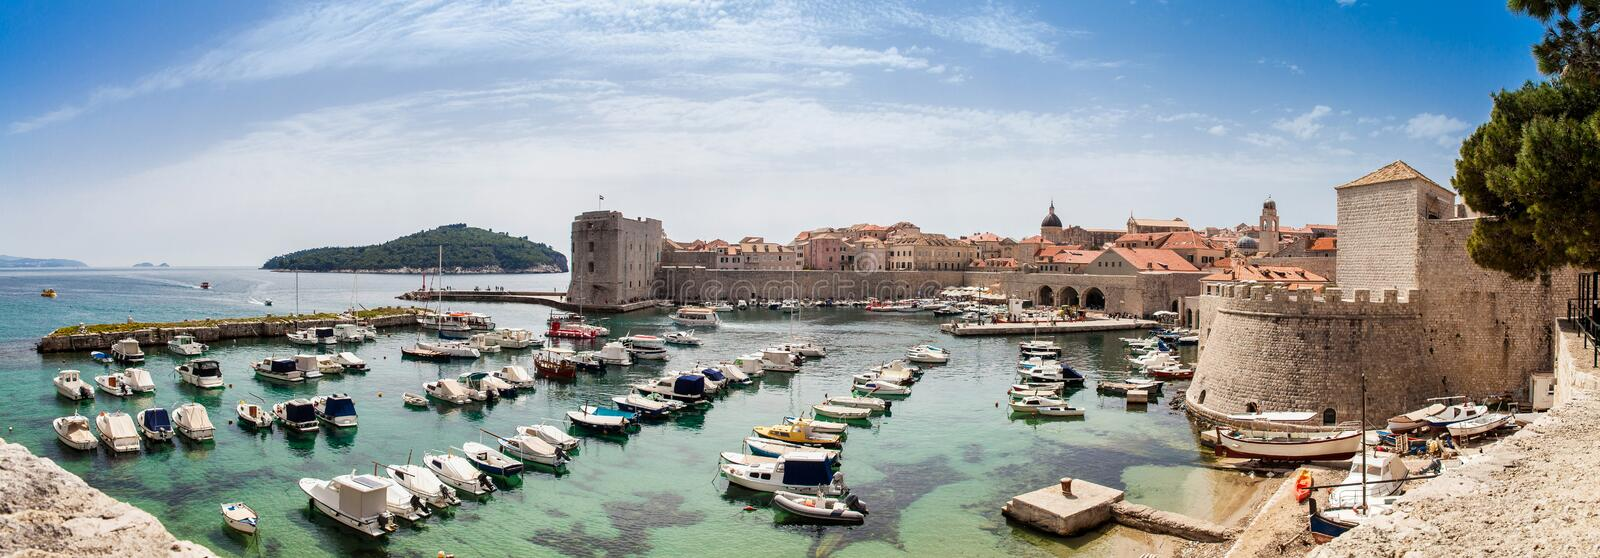 Mediterranean panorama of Dubrovnik old city including the old port, city walls and fortifications. Mediterranean panorama of the beautiful Dubrovnik old city stock image